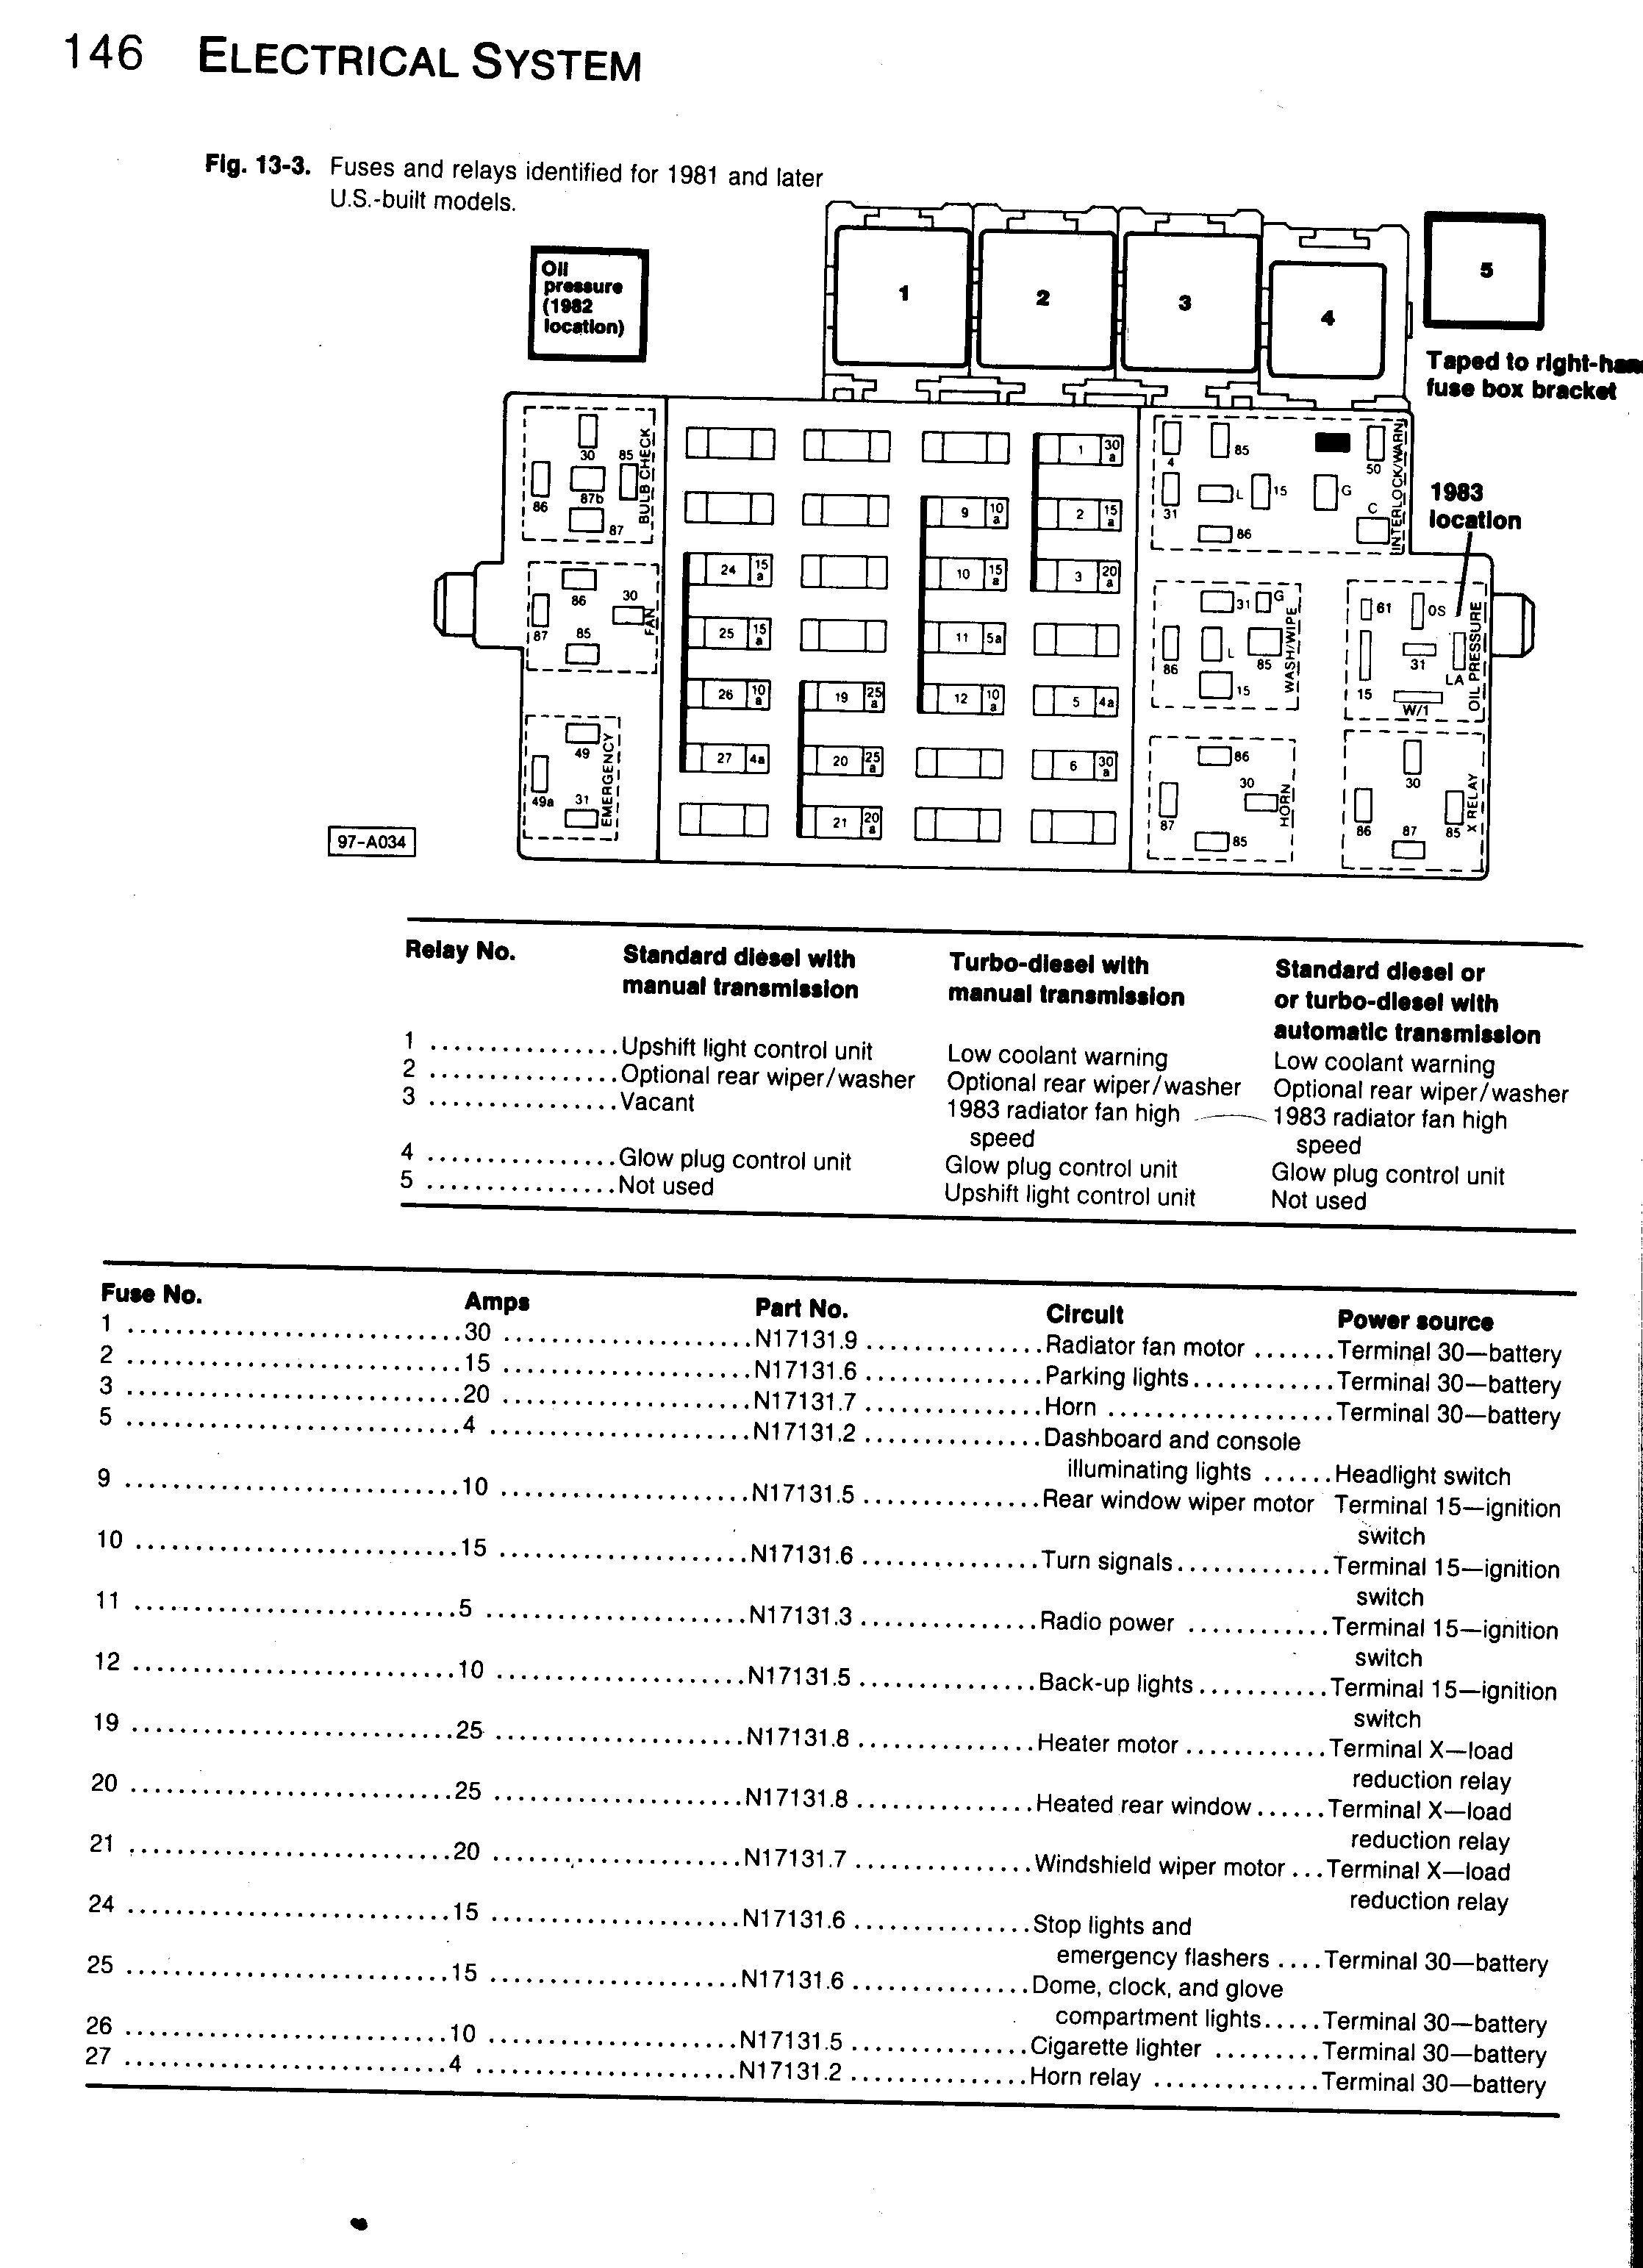 63 vw fuse diagram expert schematics diagram rh atcobennettrecoveries com  1998 VW Cabrio Fuse Diagram 2005